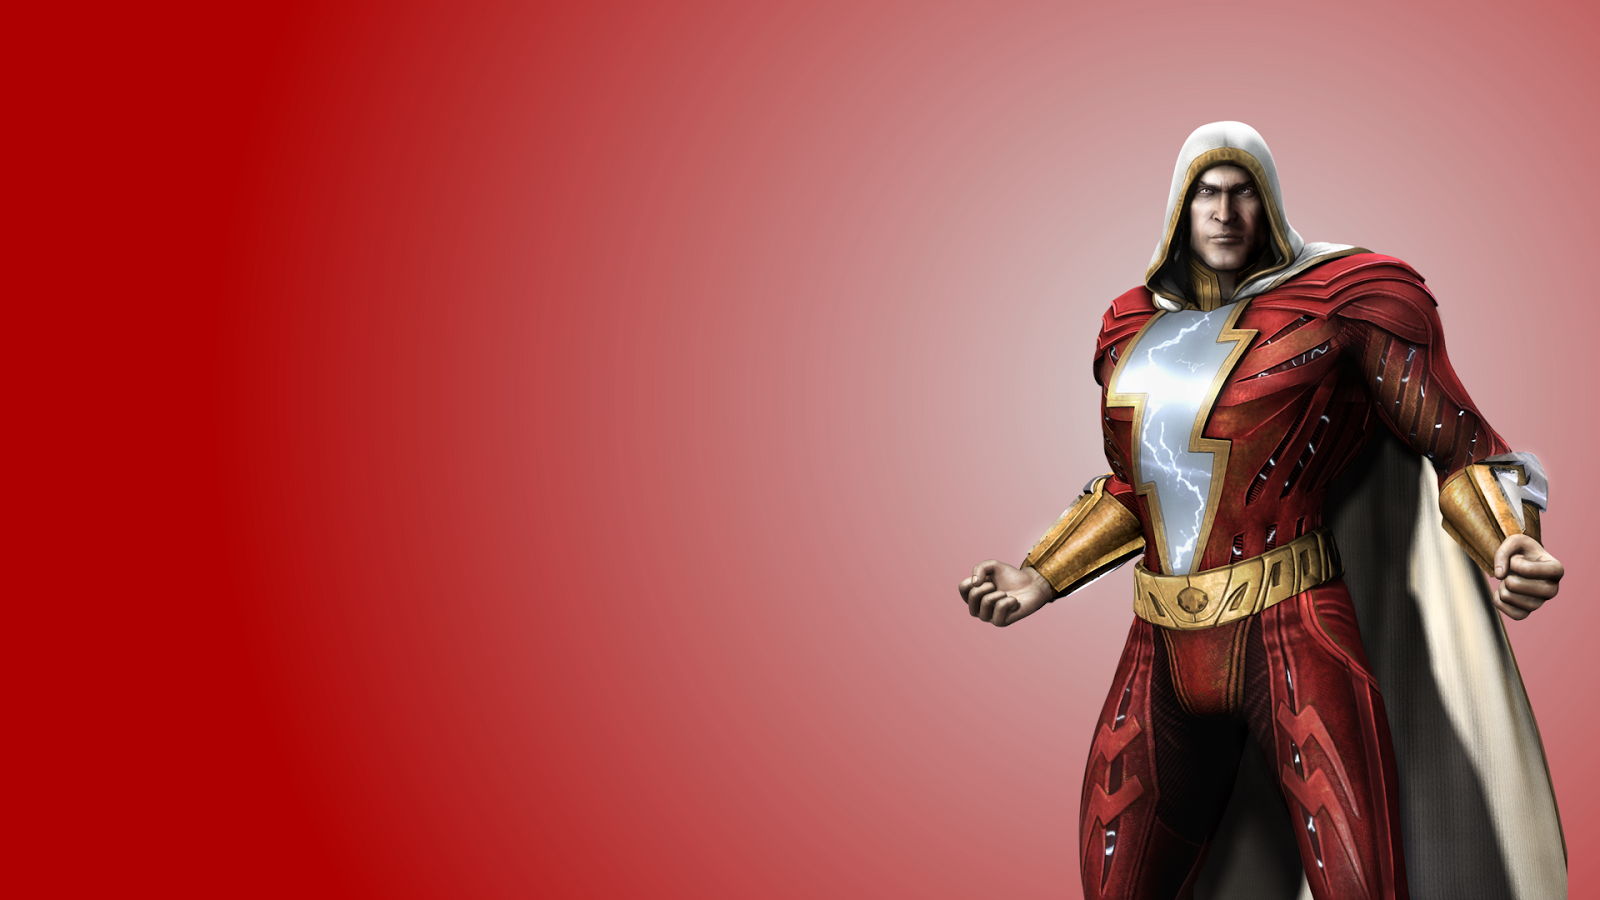 Shazam wallpaper and background image 1600x900 id - Superhero iphone wallpaper hd ...